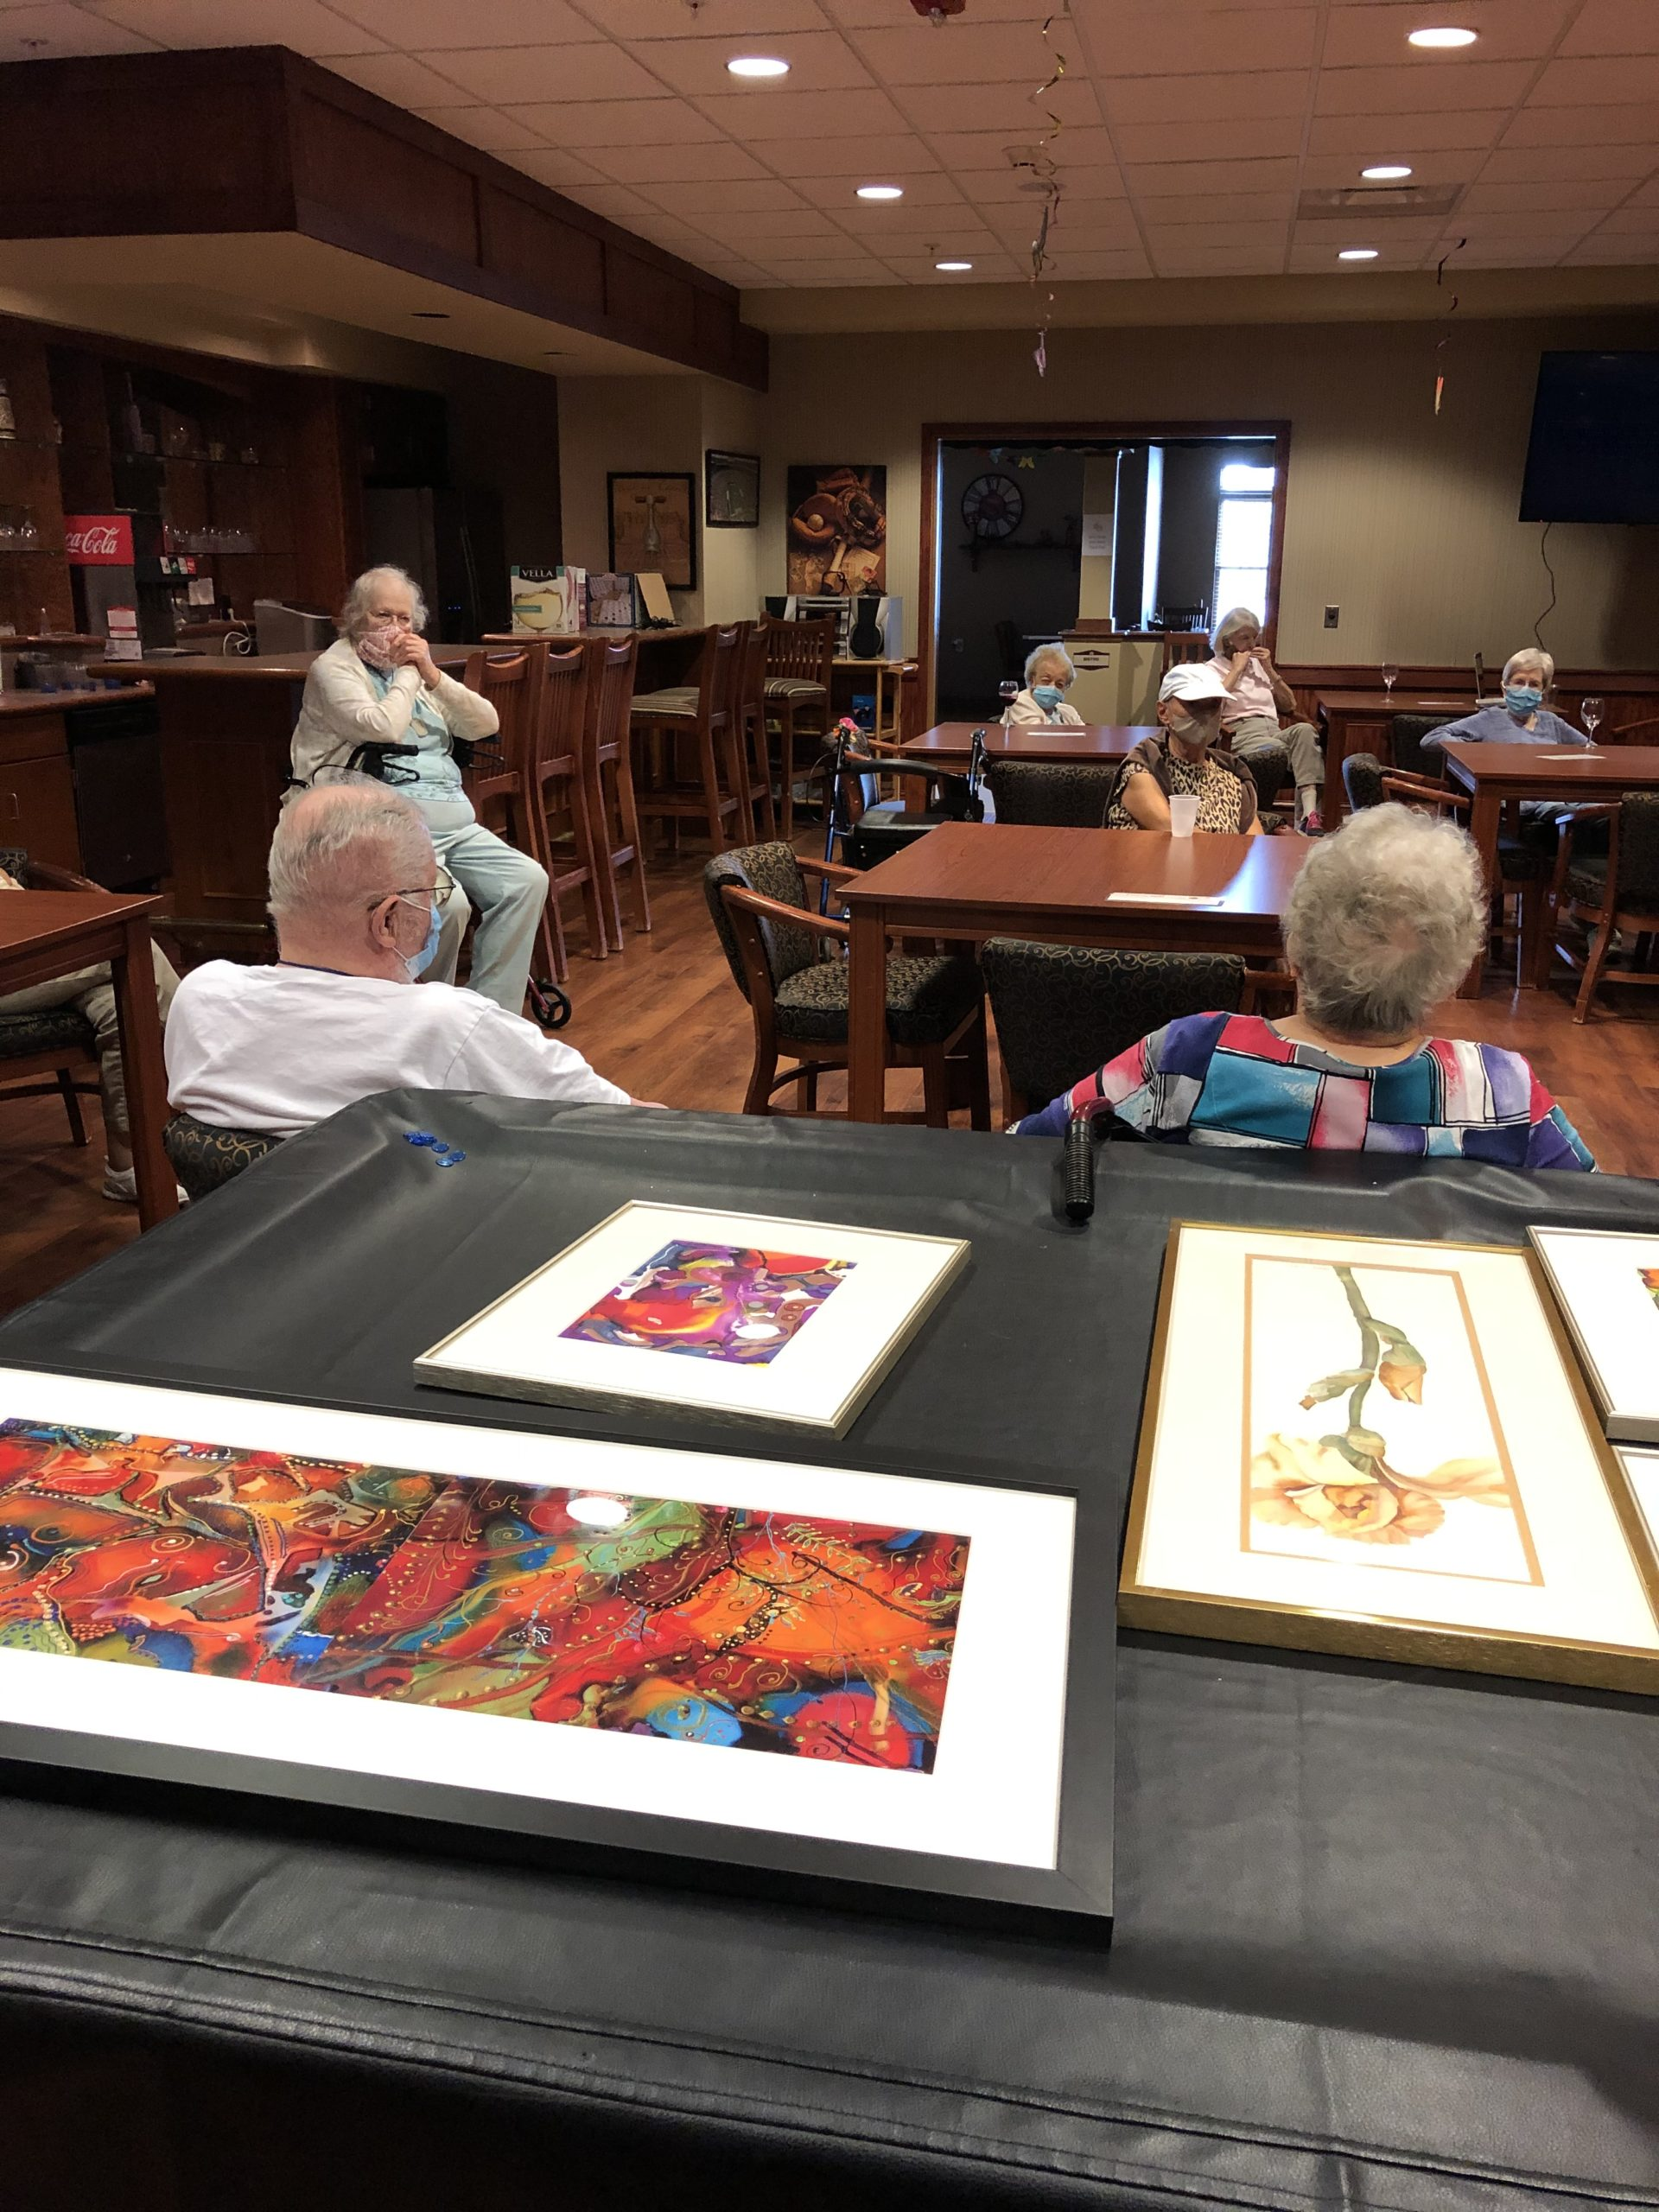 Local Artist and Resident Mary showcases her artwork